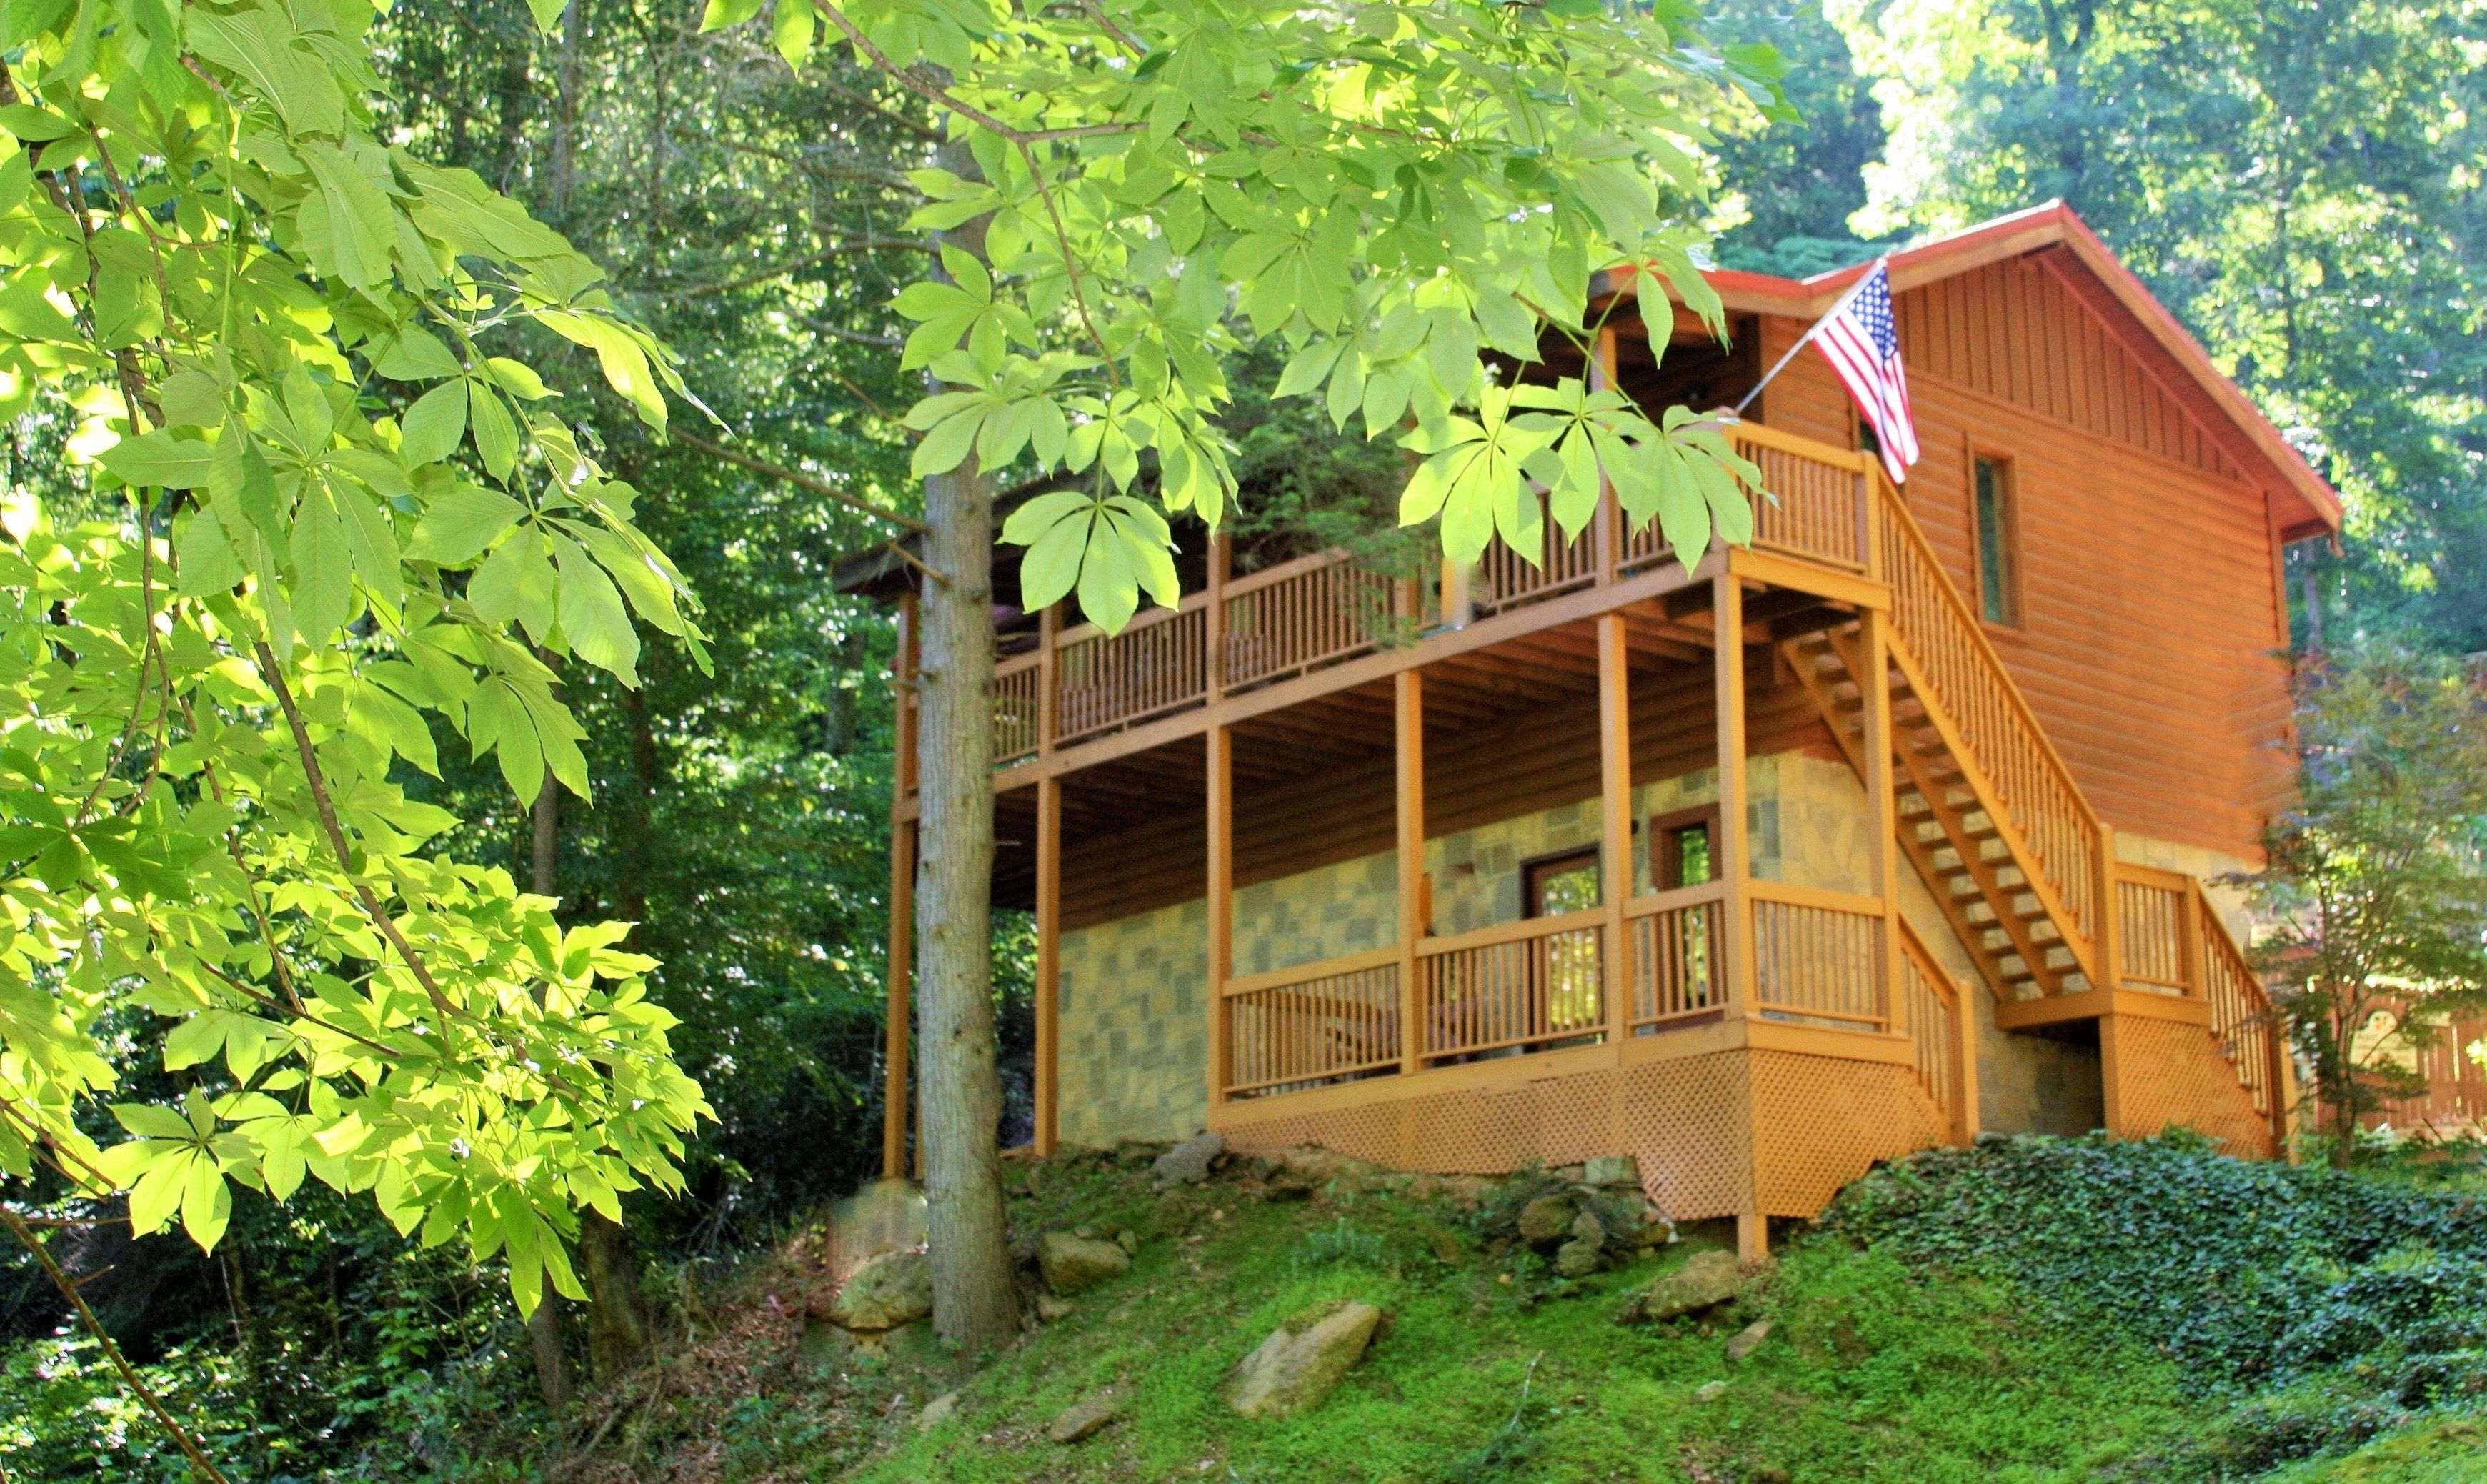 rent forge rentals for pool private tn rental cabins cabin with cheap in friendly luxury indoor gatlinburg pet pigeon